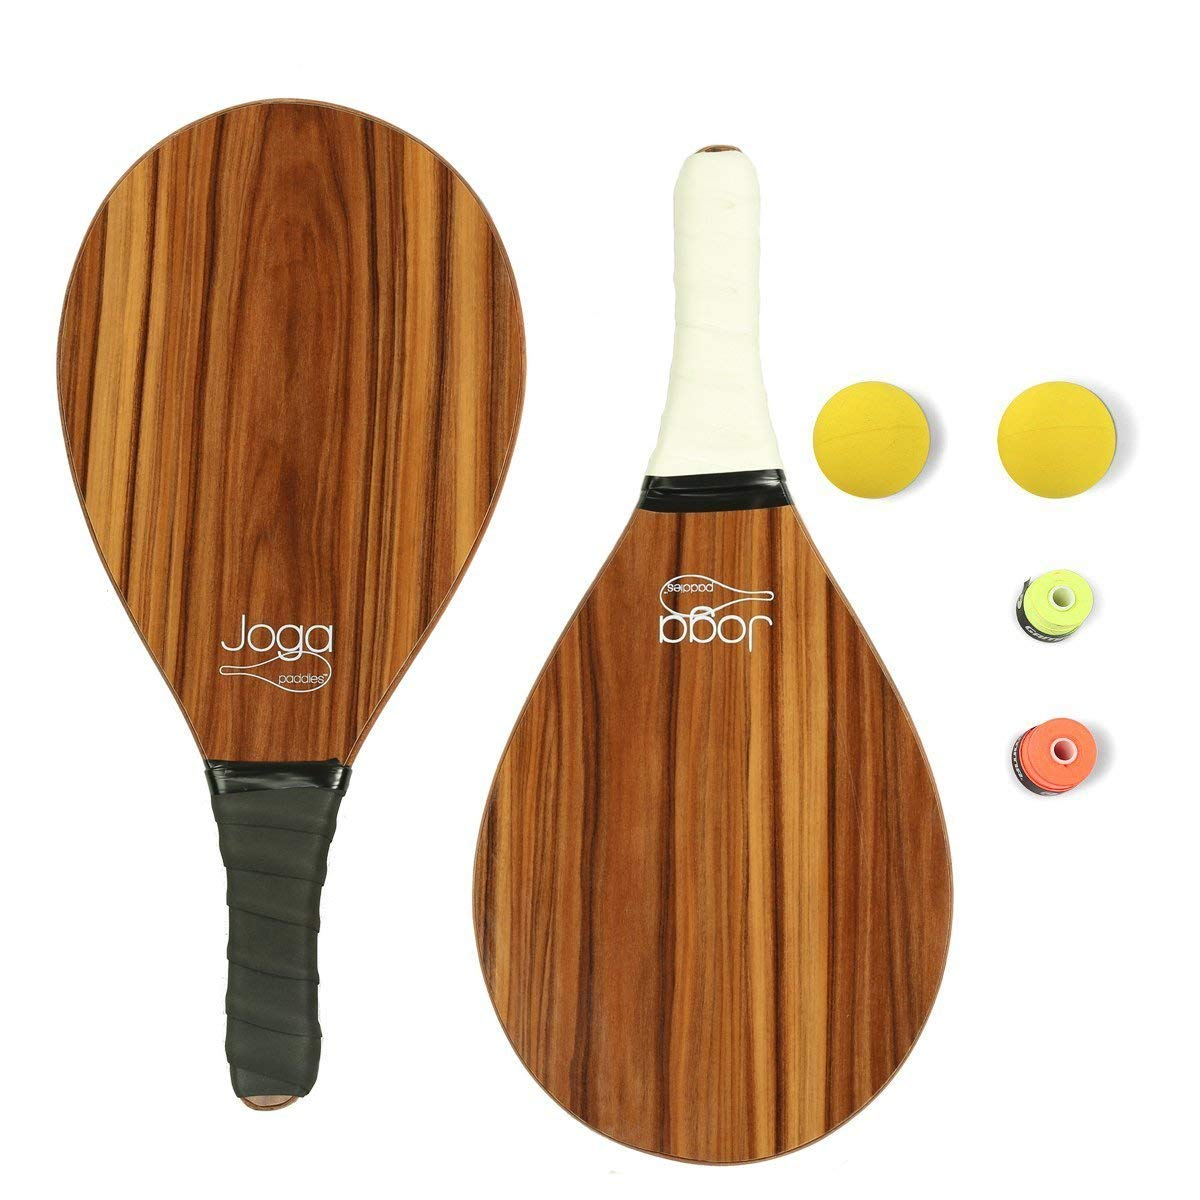 Amazon.com: 2 madera frescobol o playa Padel Raqueta Set ...